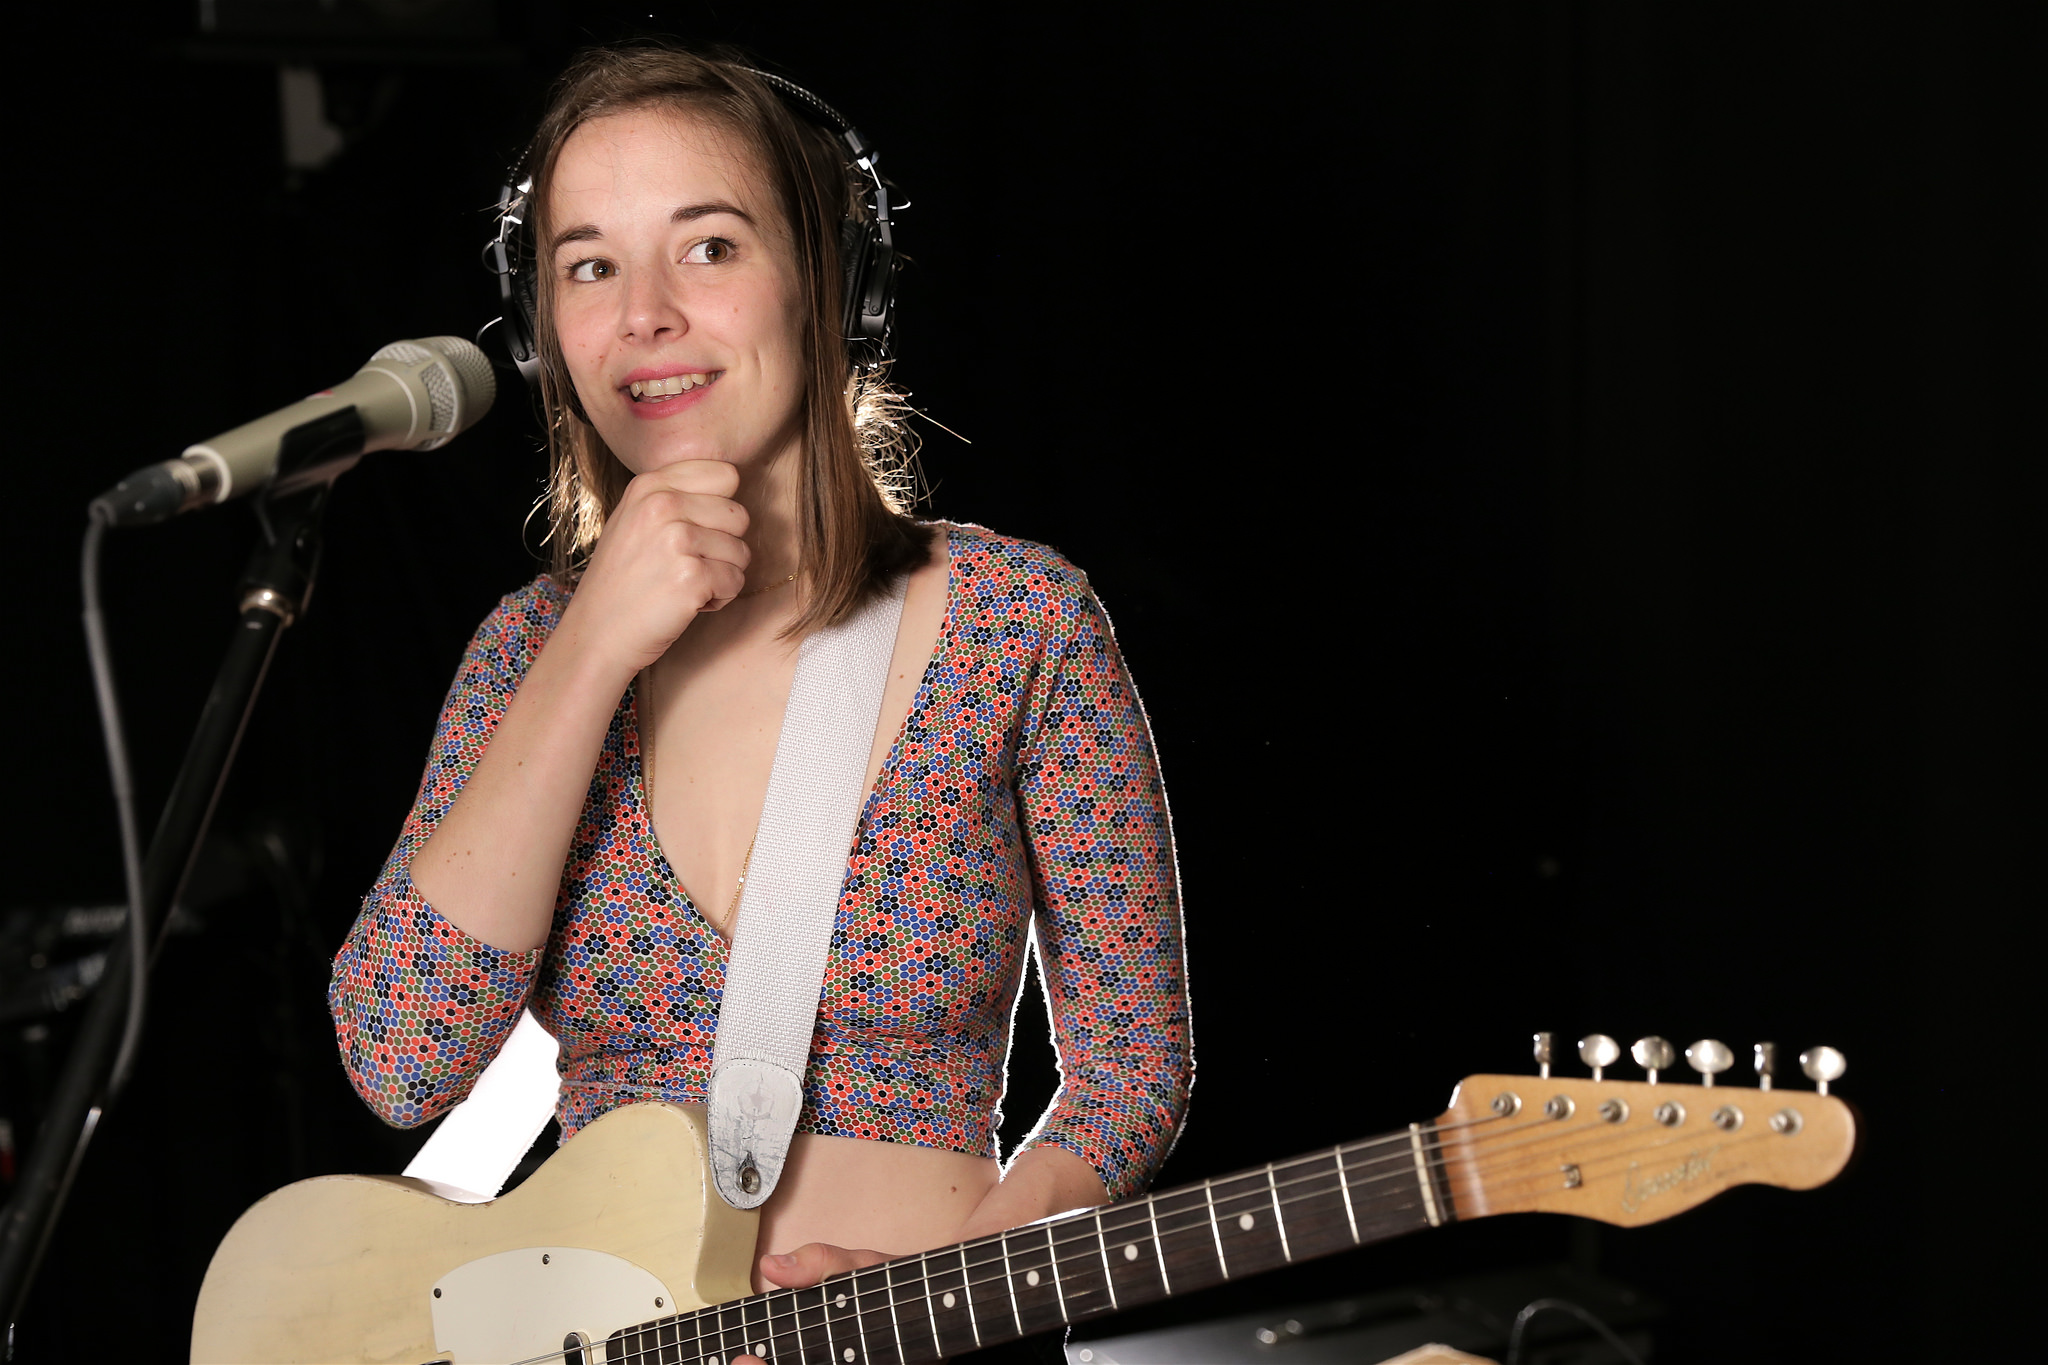 margaret glaspy net worth